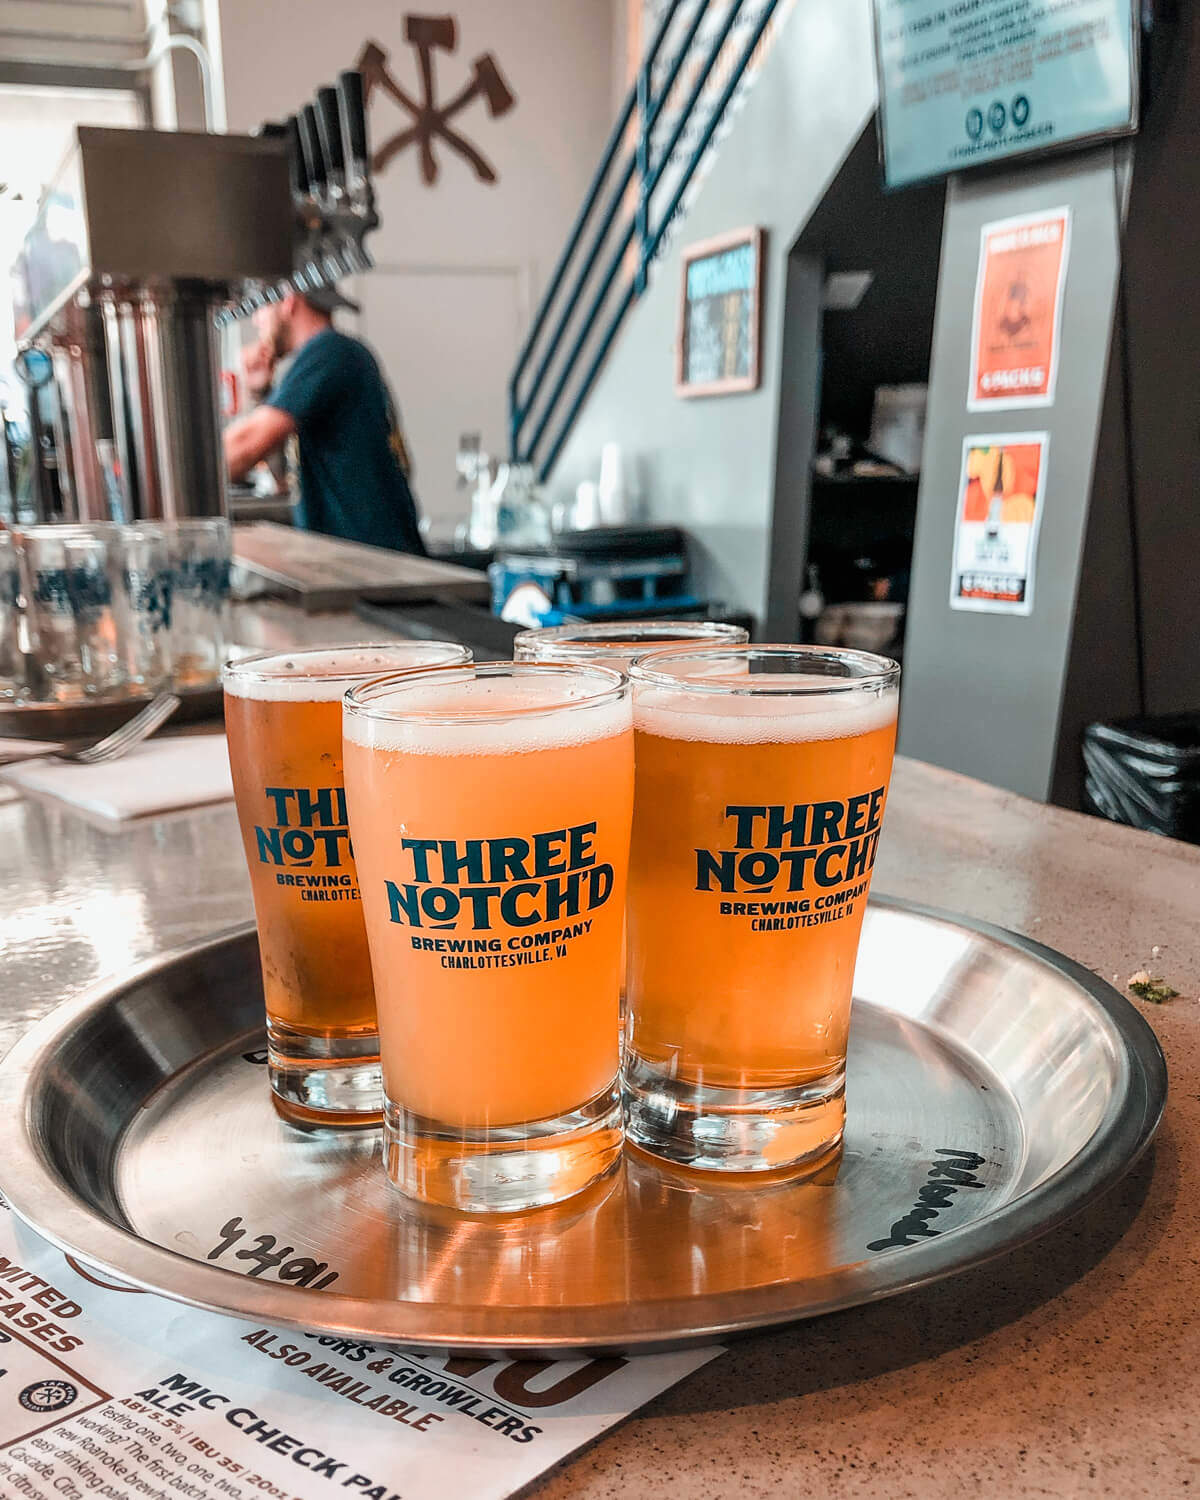 three notchd brewing